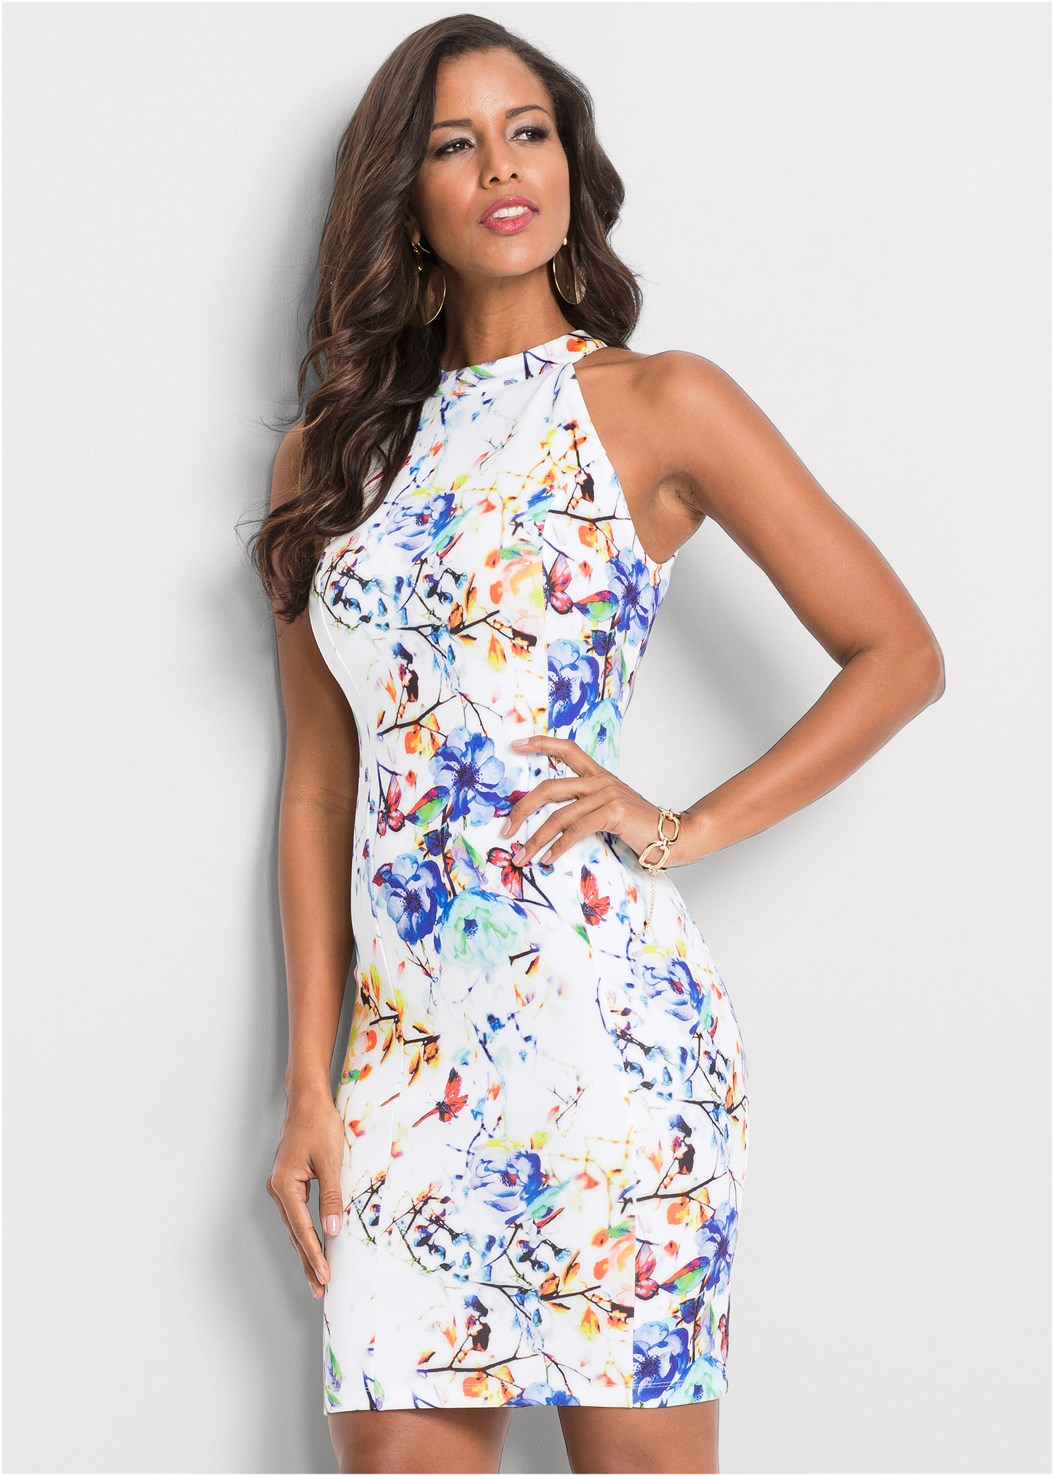 Floral Bodycon Dress,Confidence Seamless Dress